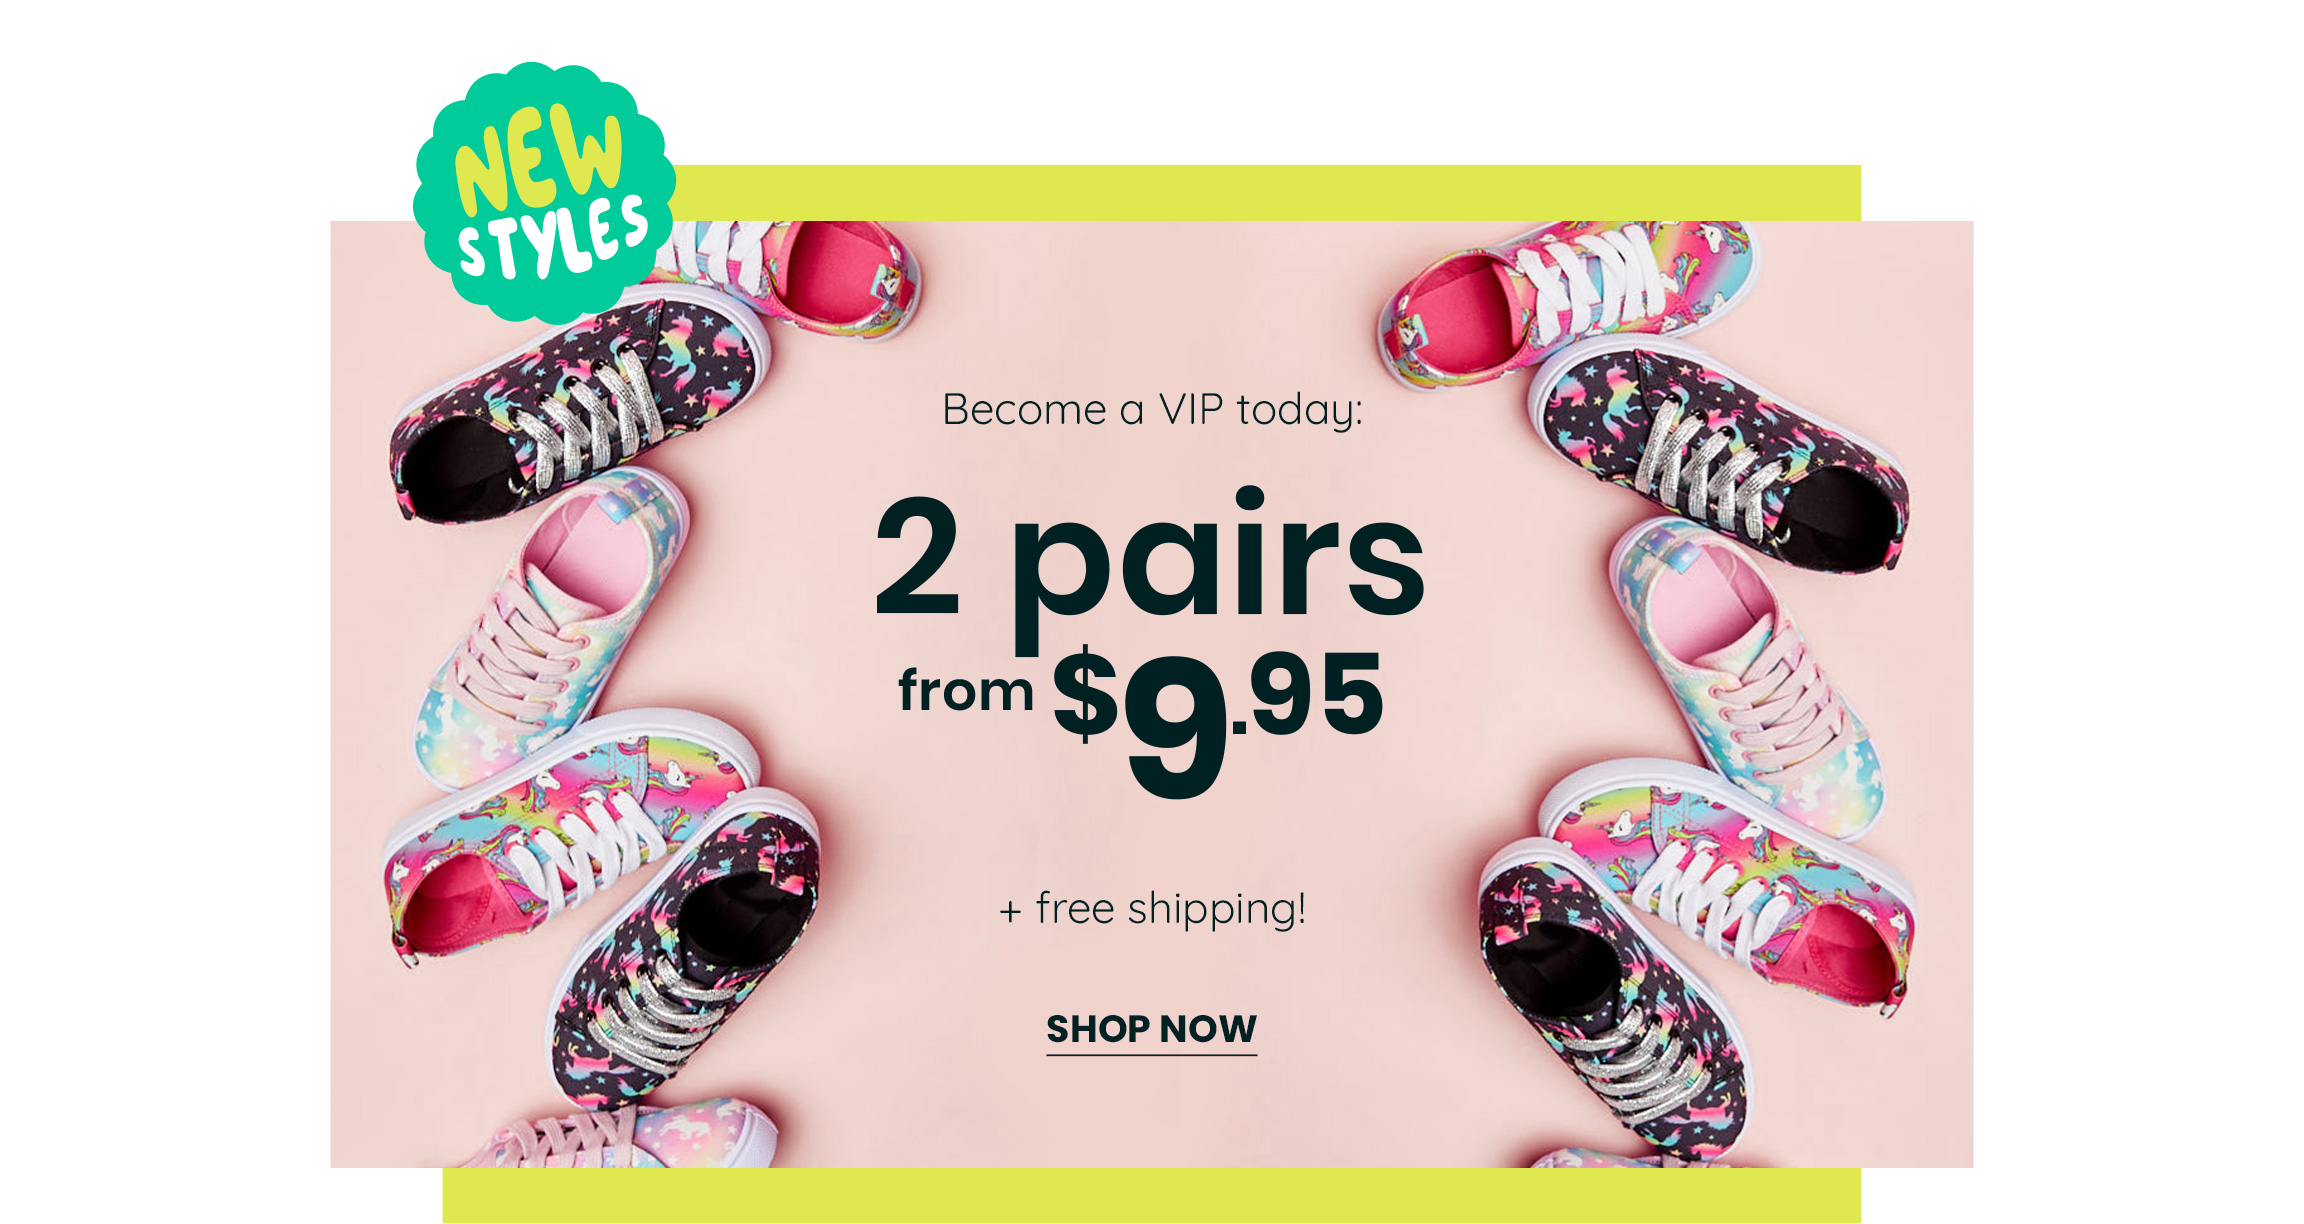 Become a VIP today: 2 pairs from $9.95 + free shipping!